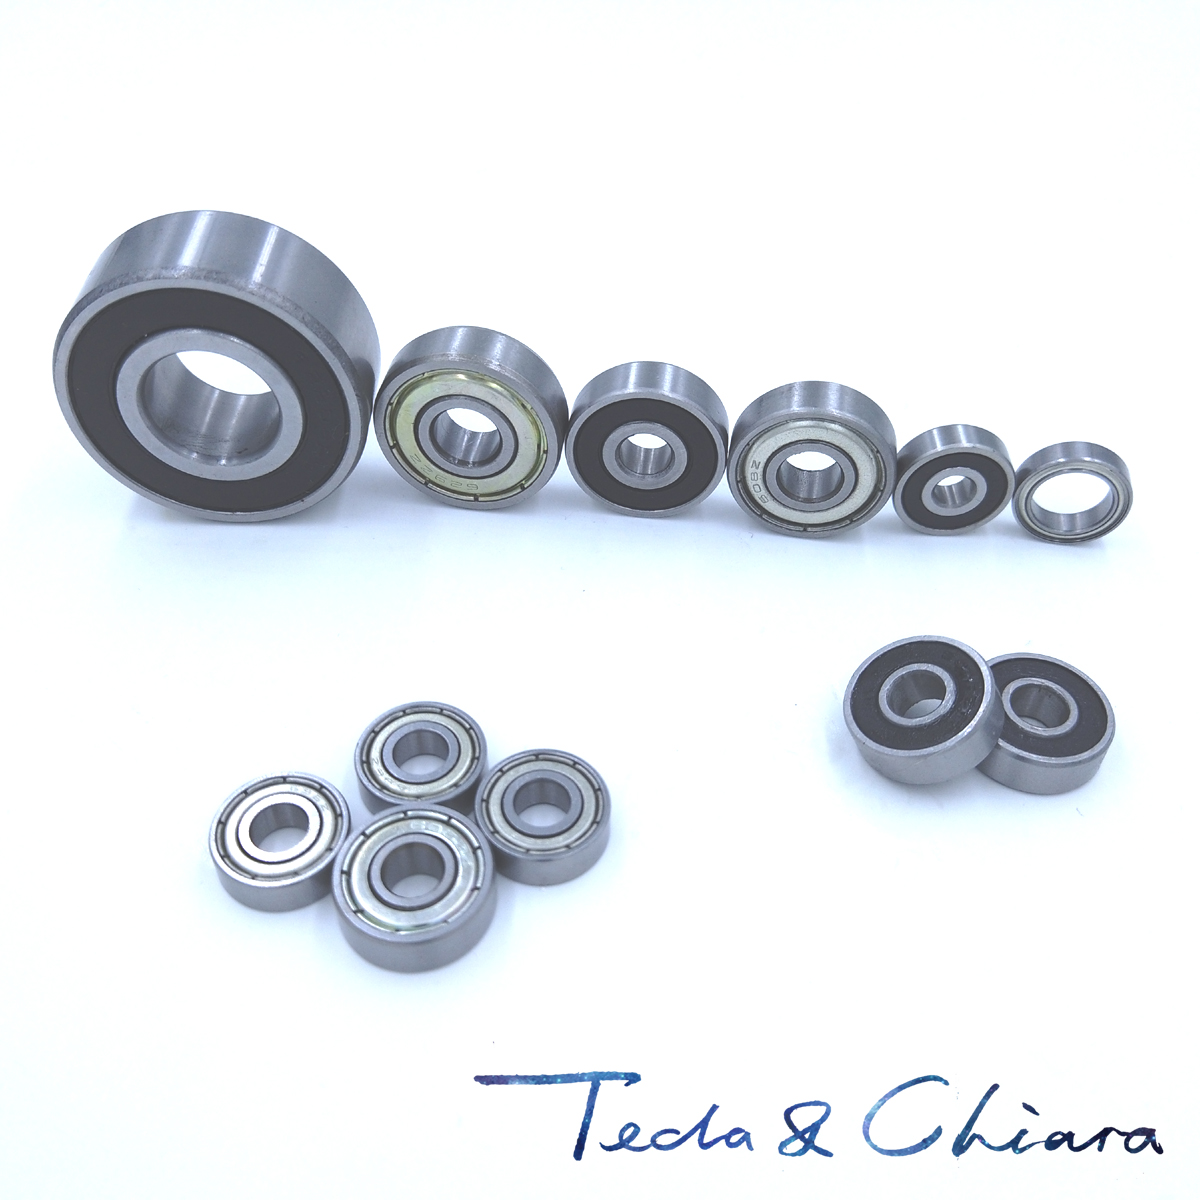 608 608ZZ 608RS 608-2Z 608Z 608-2RS ZZ RS RZ 2RZ AEBC-5 Deep Groove Ball Bearings 8 X 22 X 7mm